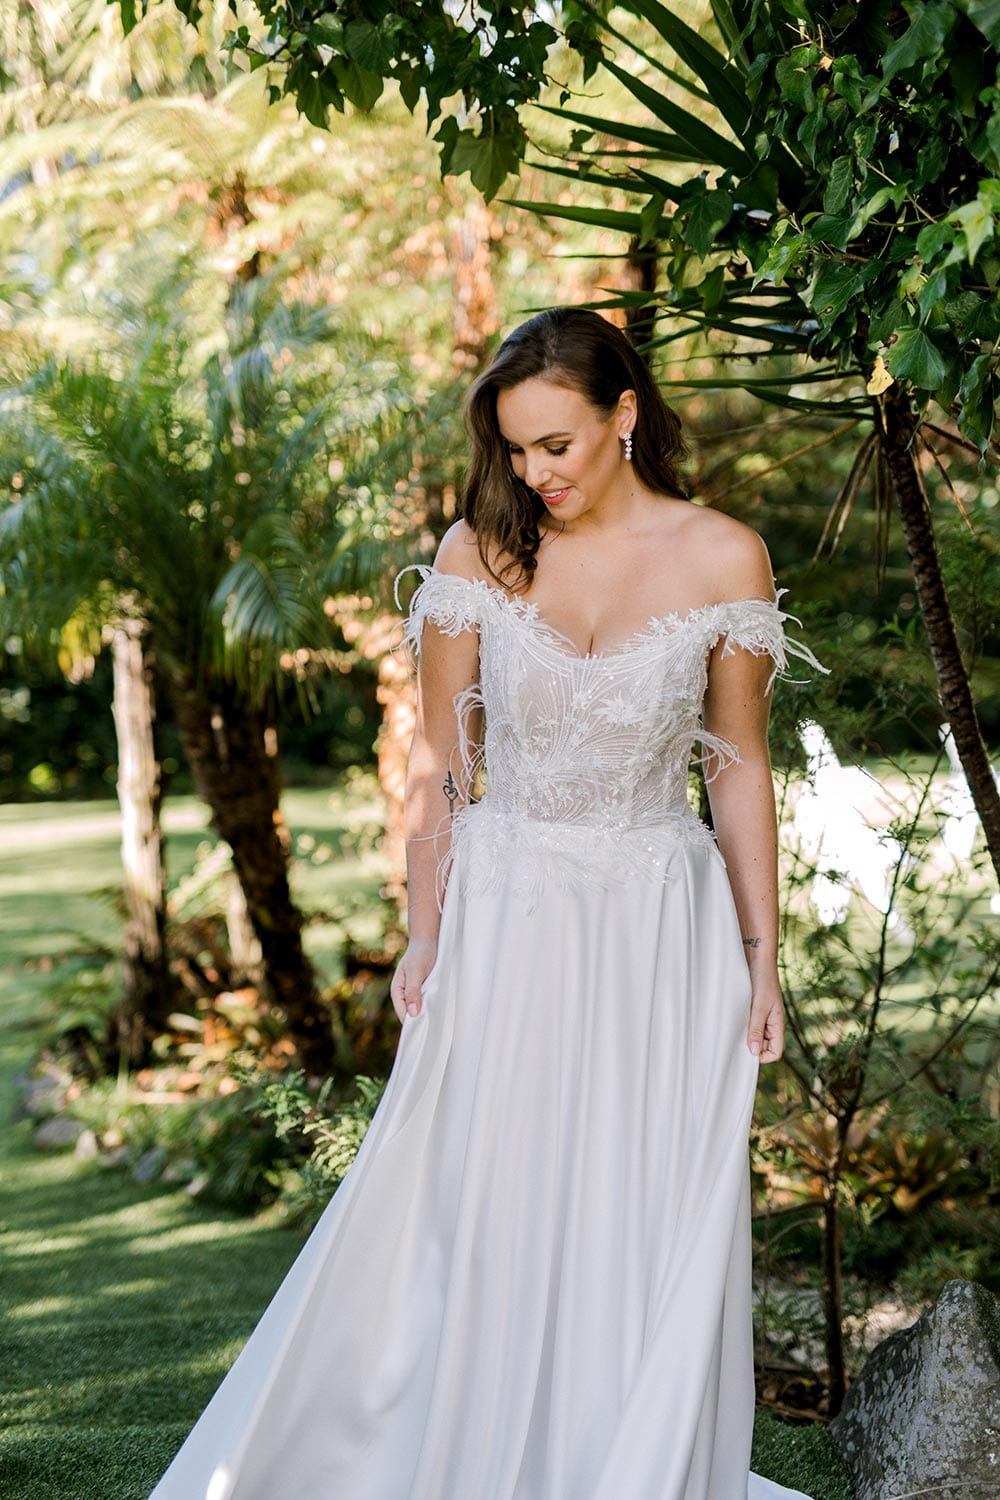 Genevive Wedding Dress from Vinka Design. The soft off-the-shoulder sleeves & semi-sheer structured bodice with hand-appliqued lace and a soft satin skirt make this a romantic & dreamy wedding dress. Side detail of dress with train, photographed at Tui Hills.